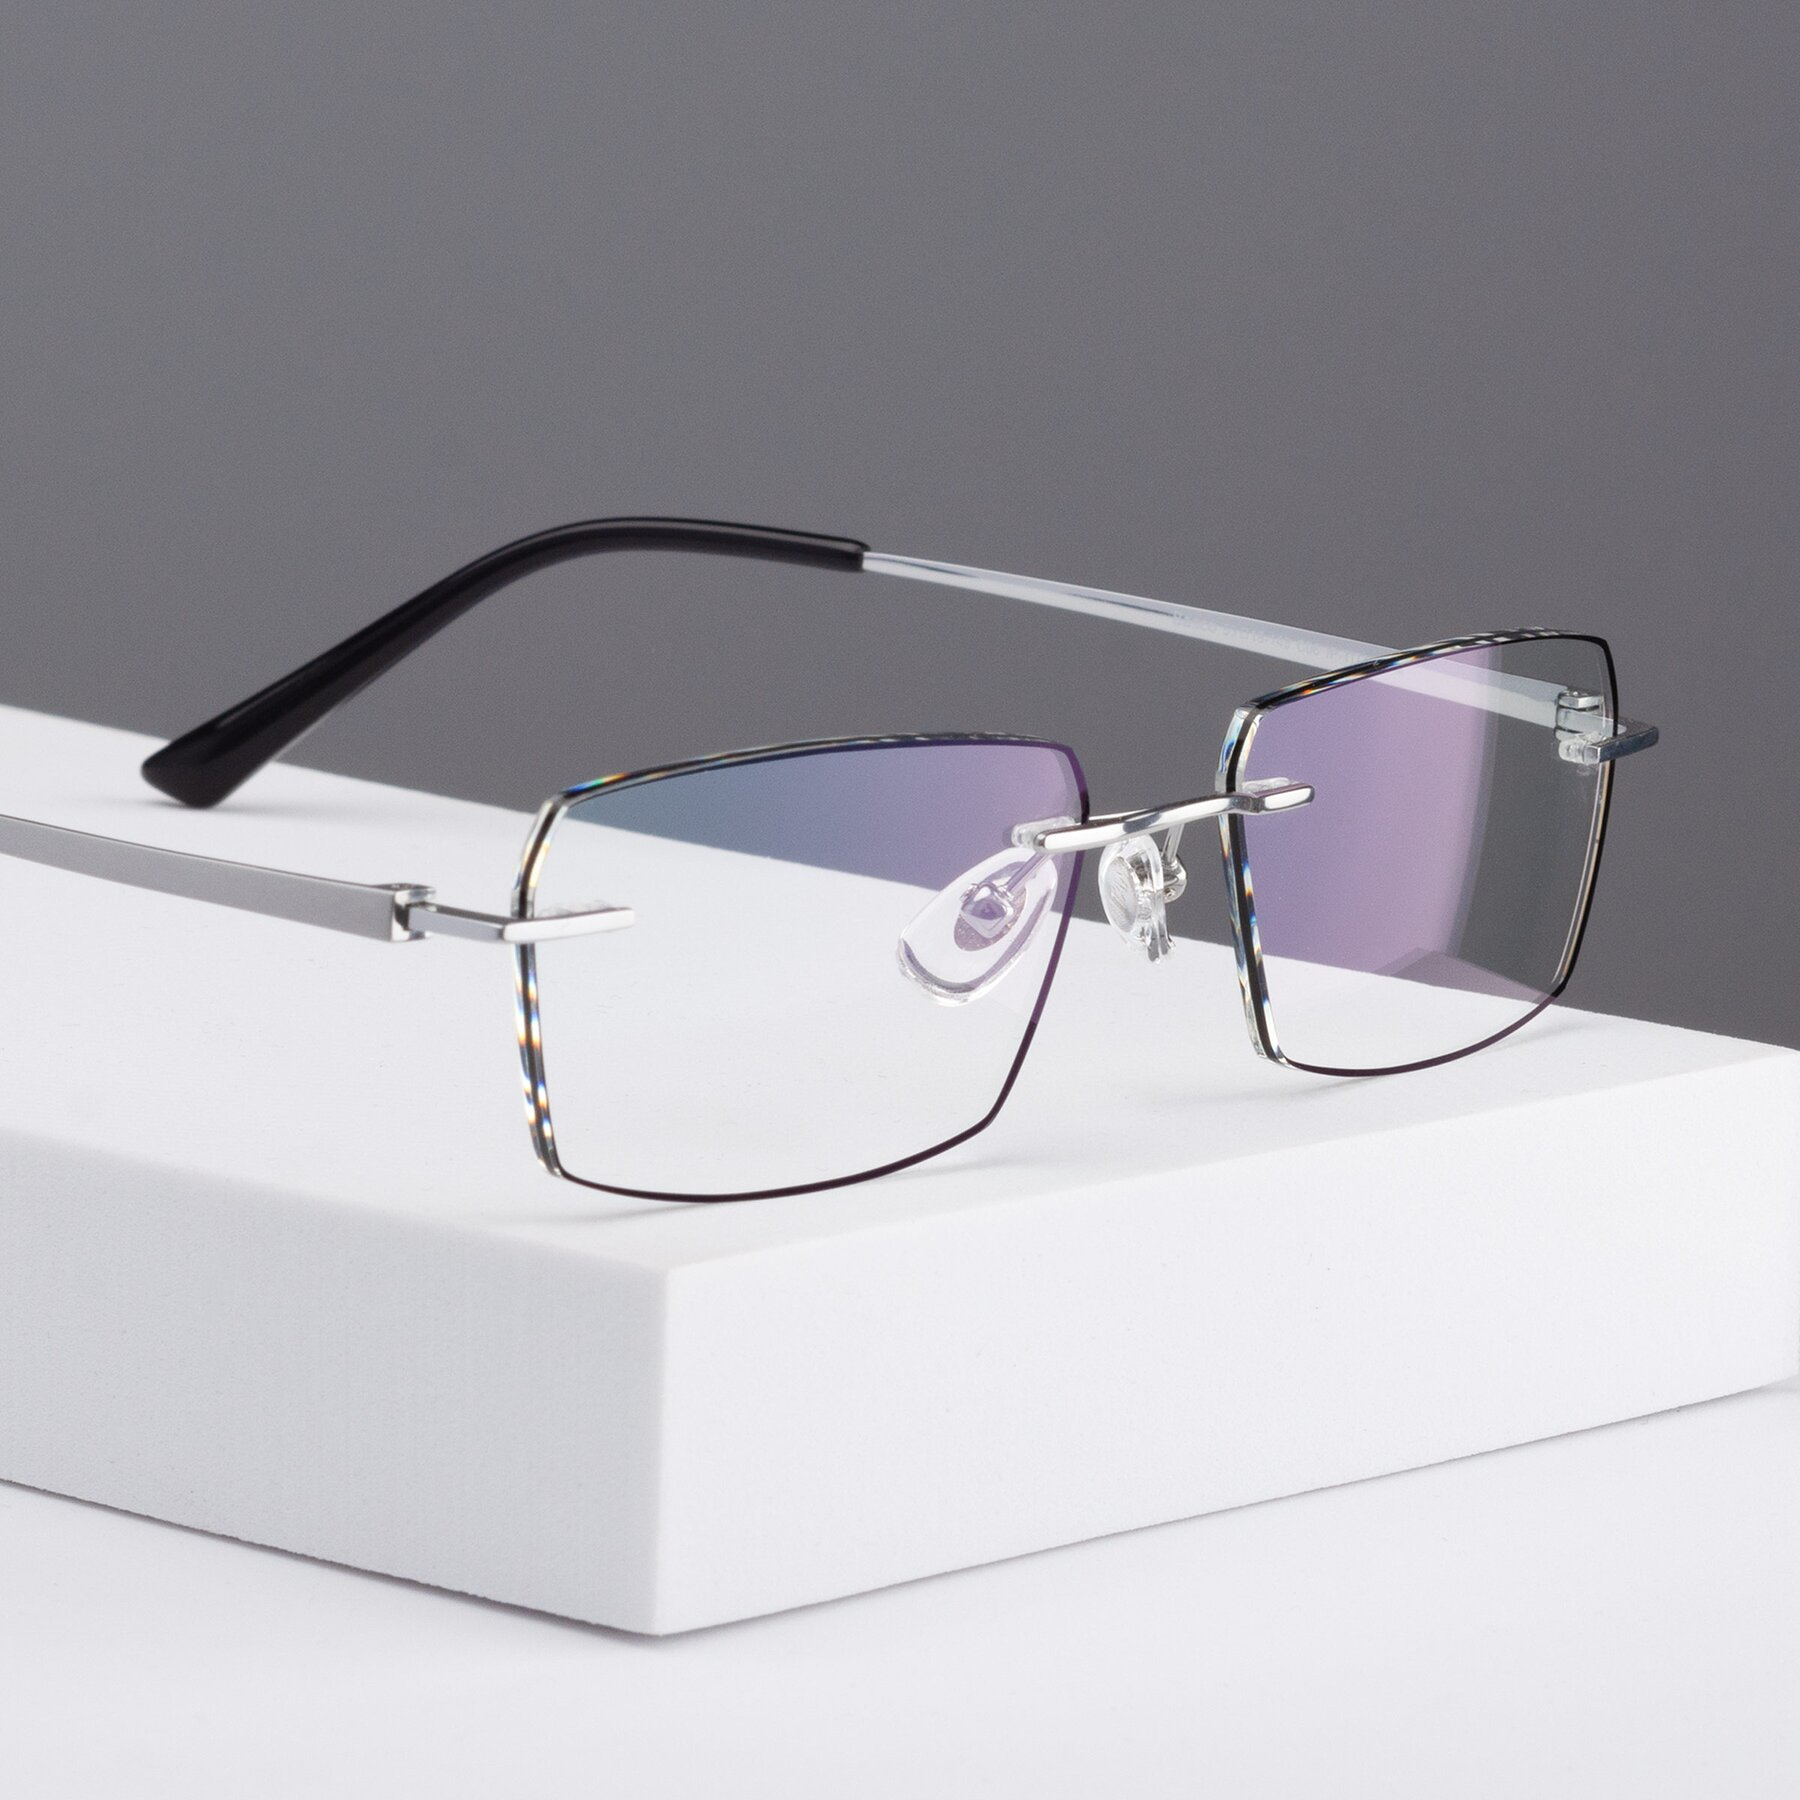 Men's lifestyle photography #1 of Basco in Silver-Black with Clear Eyeglass Lenses